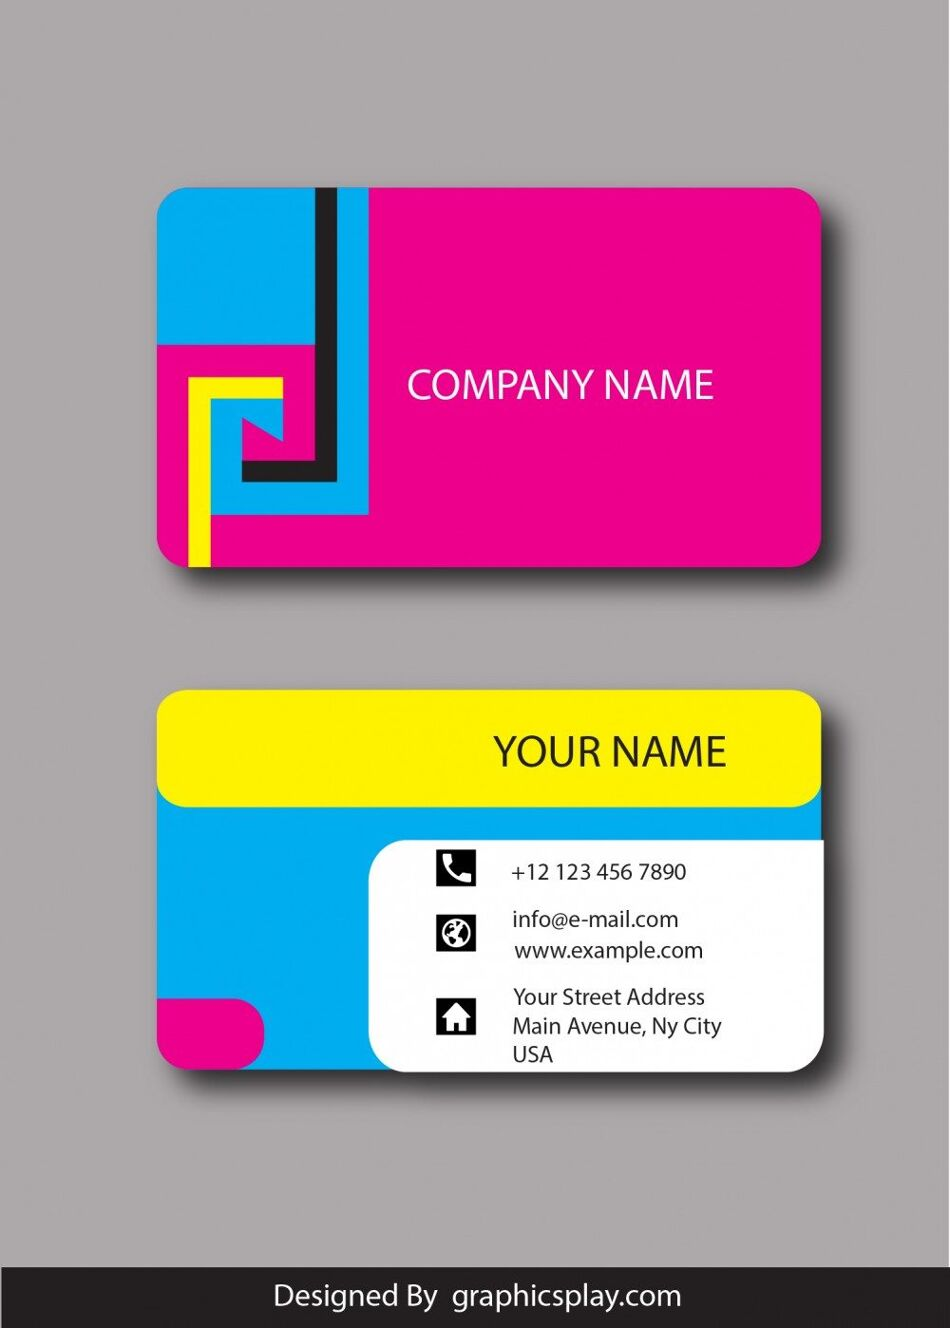 Business Card Design Vector Template - ID 1800 1